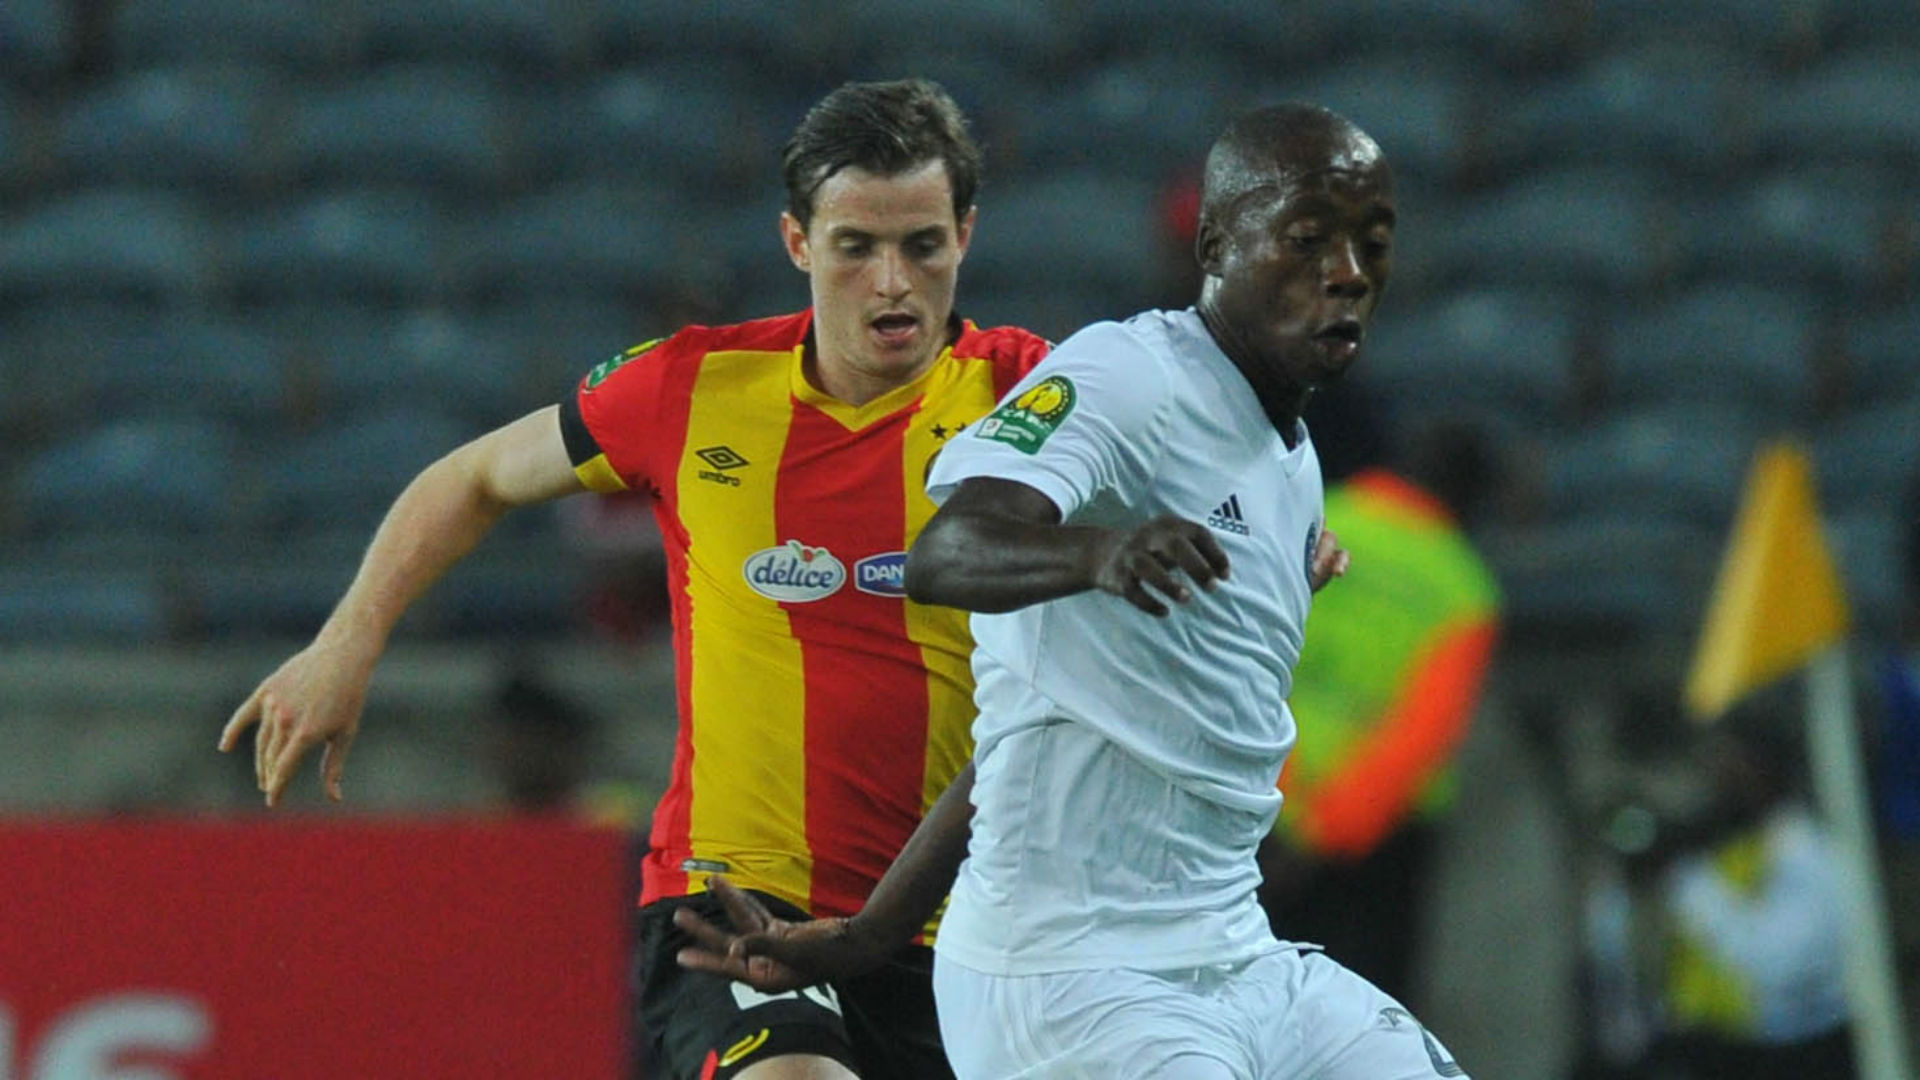 Ayman Ben Mohamed of Esperance challenged by Ben Motshwari of Orlando Pirates, February 2019